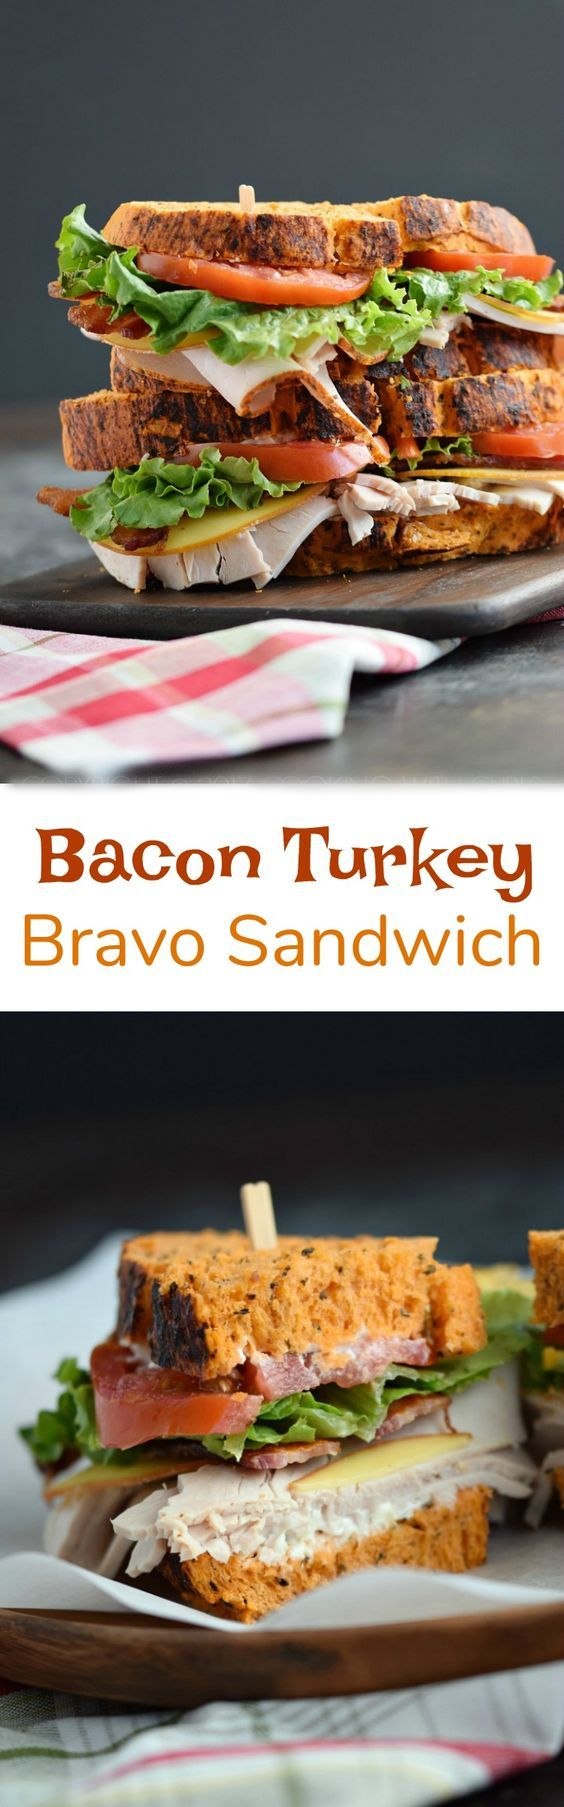 Bacon Turkey Bravo Sandwich on Tomato Basil Bread with crispy bacon, Gouda cheese, sliced turkey, lettuce, and tomato is perfect for just about any meal!